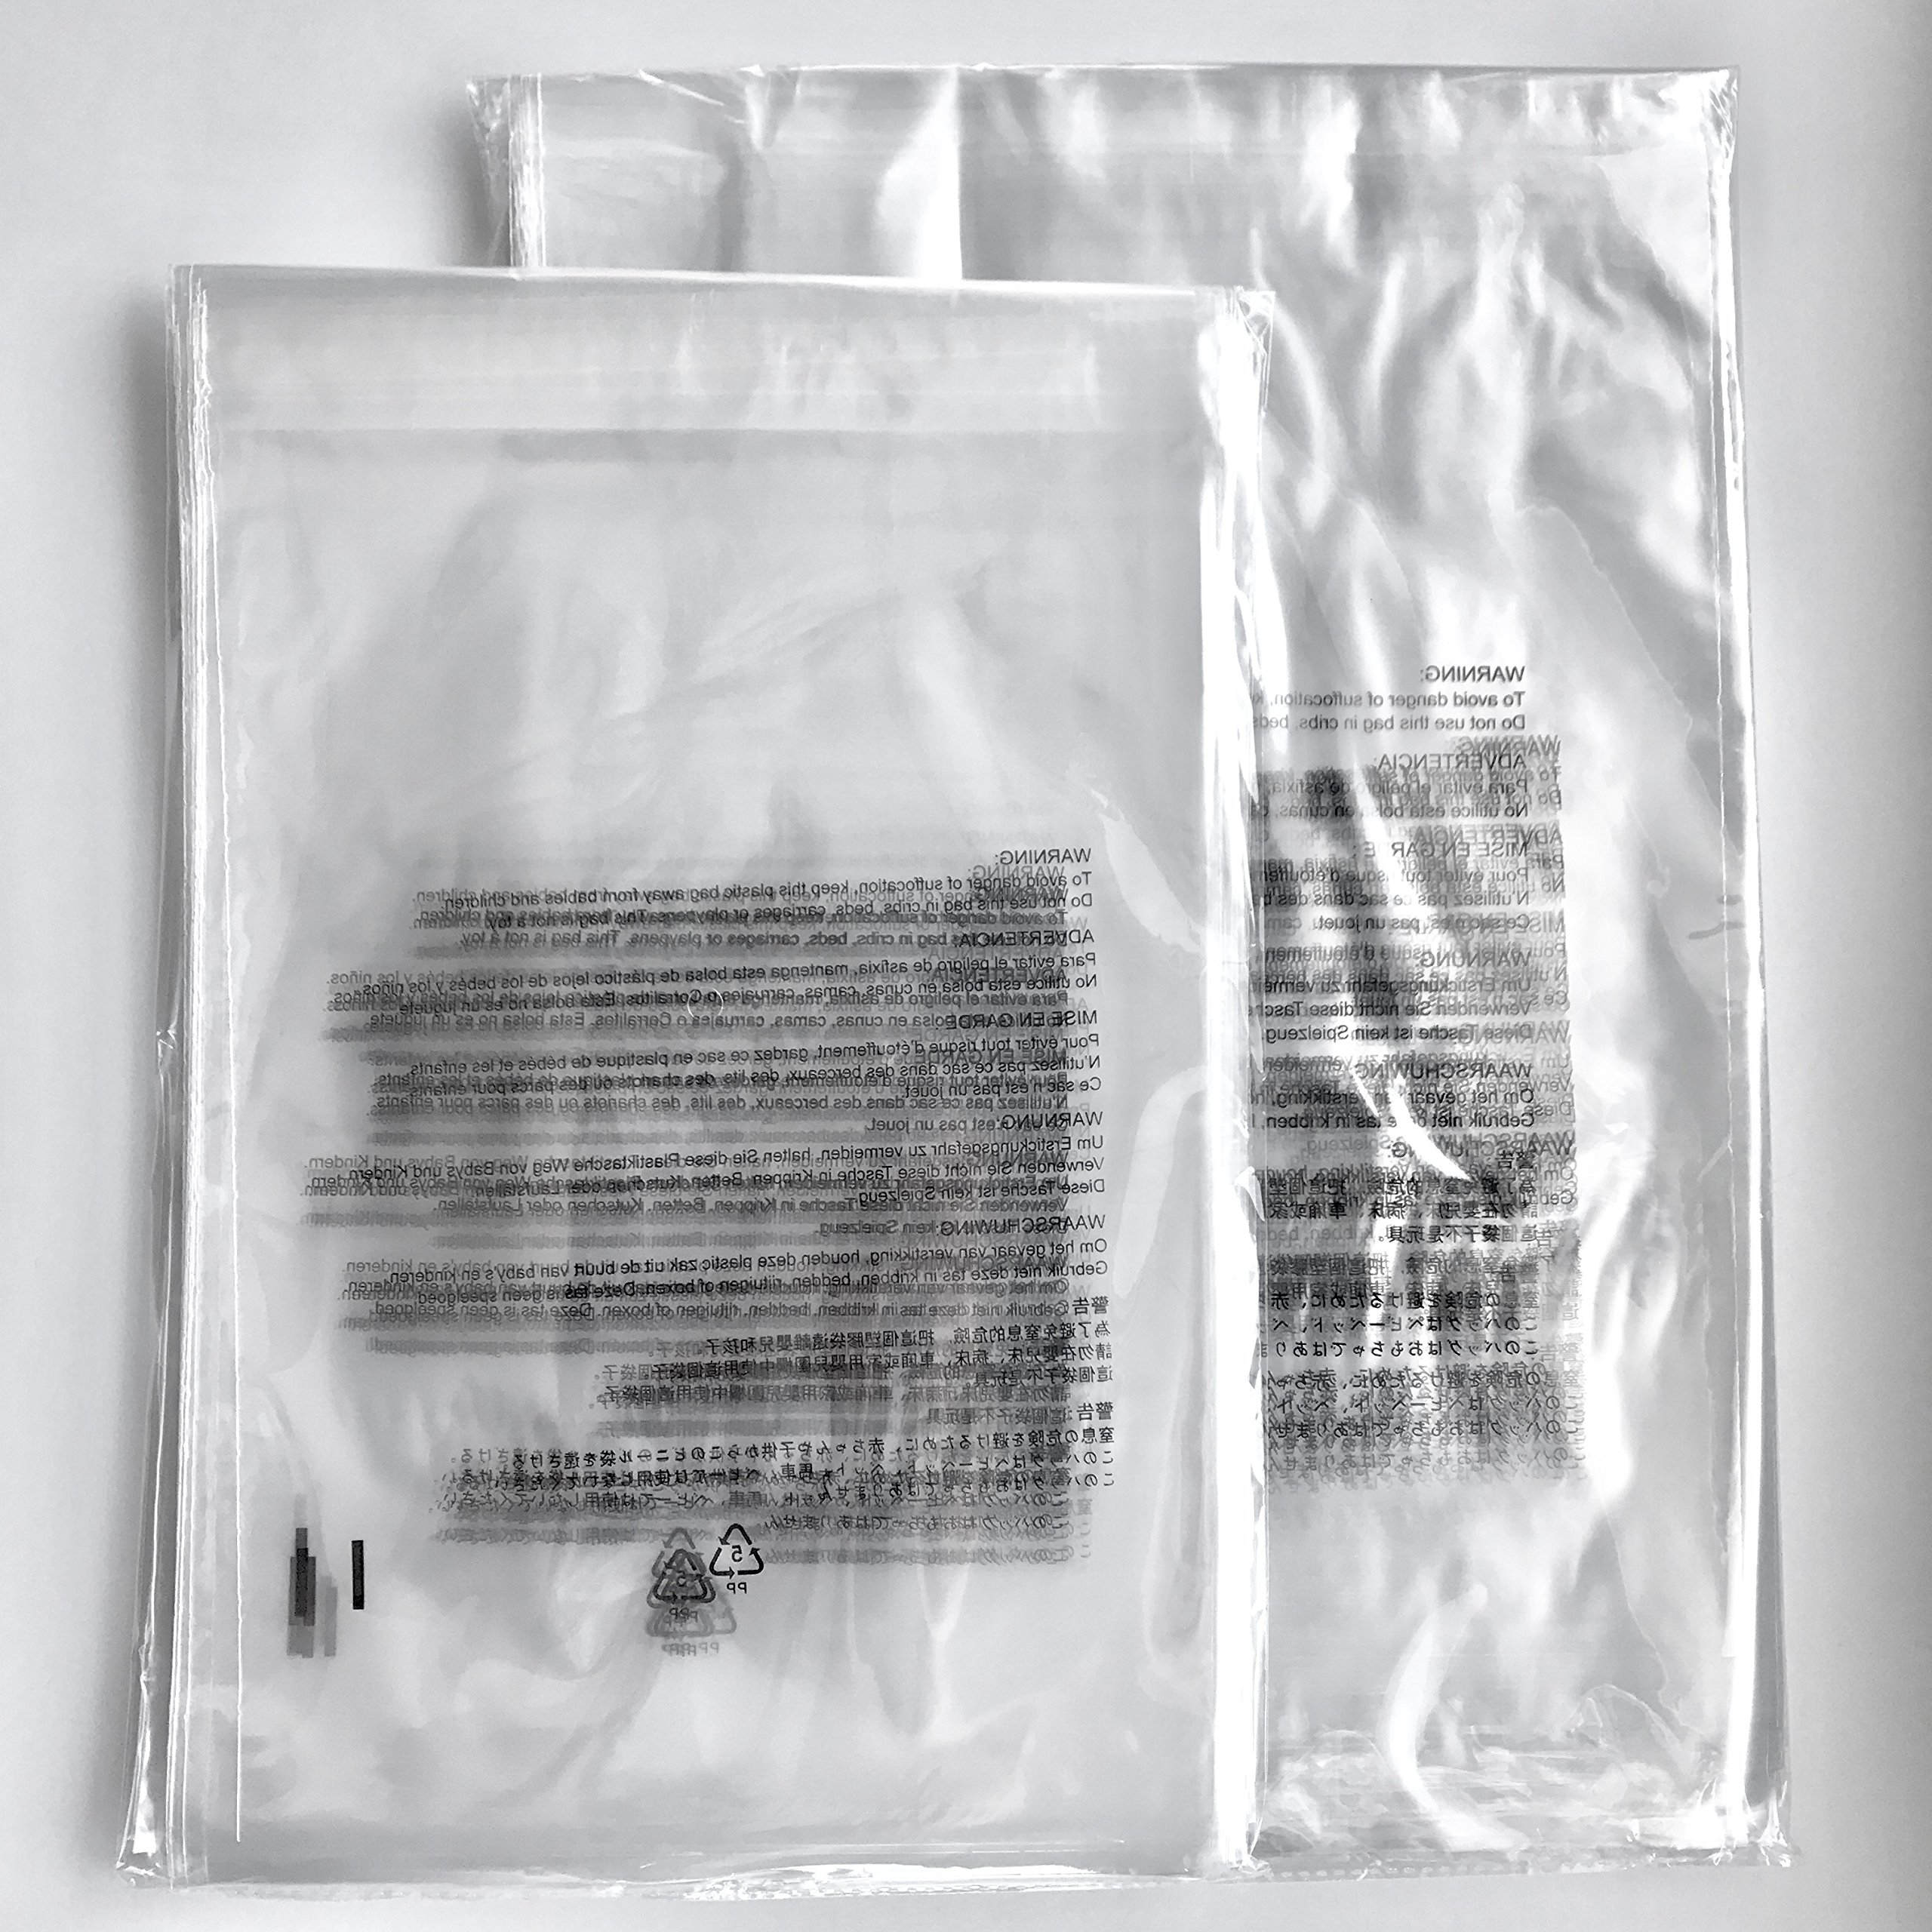 """Clear Self Seal Poly Bags, 1.5 Mil, Resealable, Suffocation Warning in 7 Languages, Suitable for International and USA FBA Seller - Combo Pack (Combo M (9""""X12"""" and 11""""X14"""") 200 Count)"""